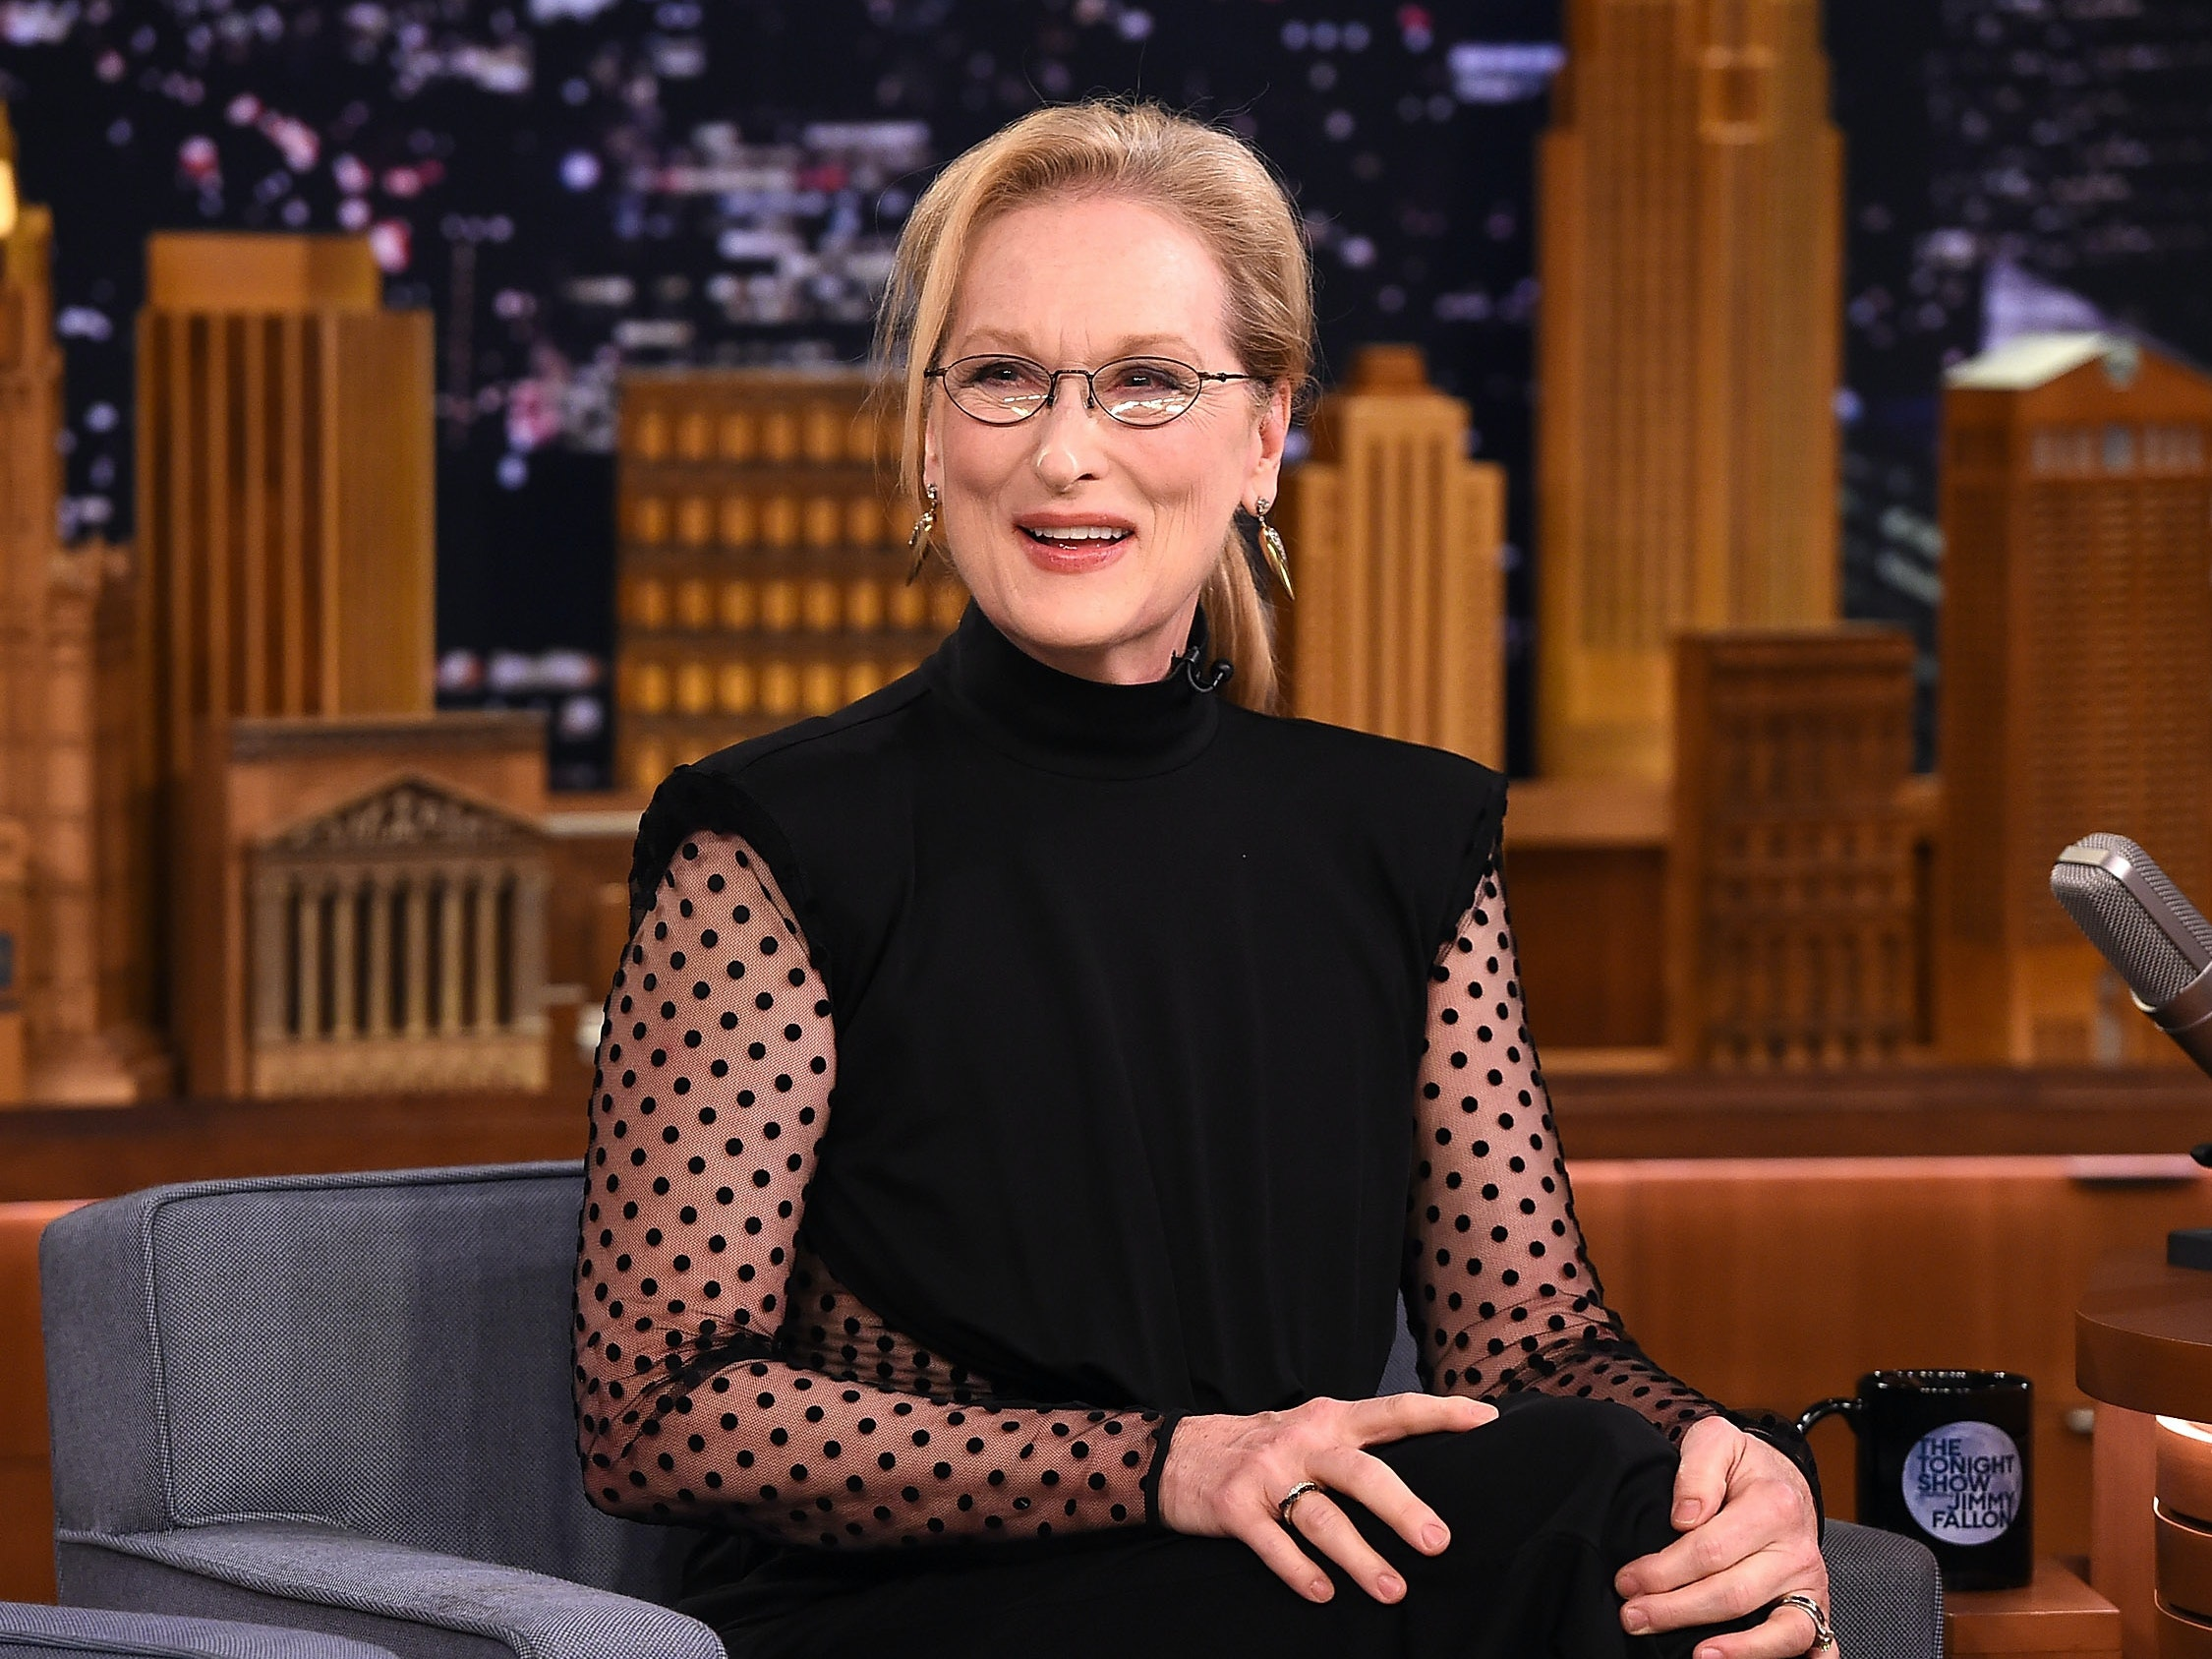 Why Meryl Streep's 'Rather Be a Rebel Than a Slave' Shirt Broke Twitter